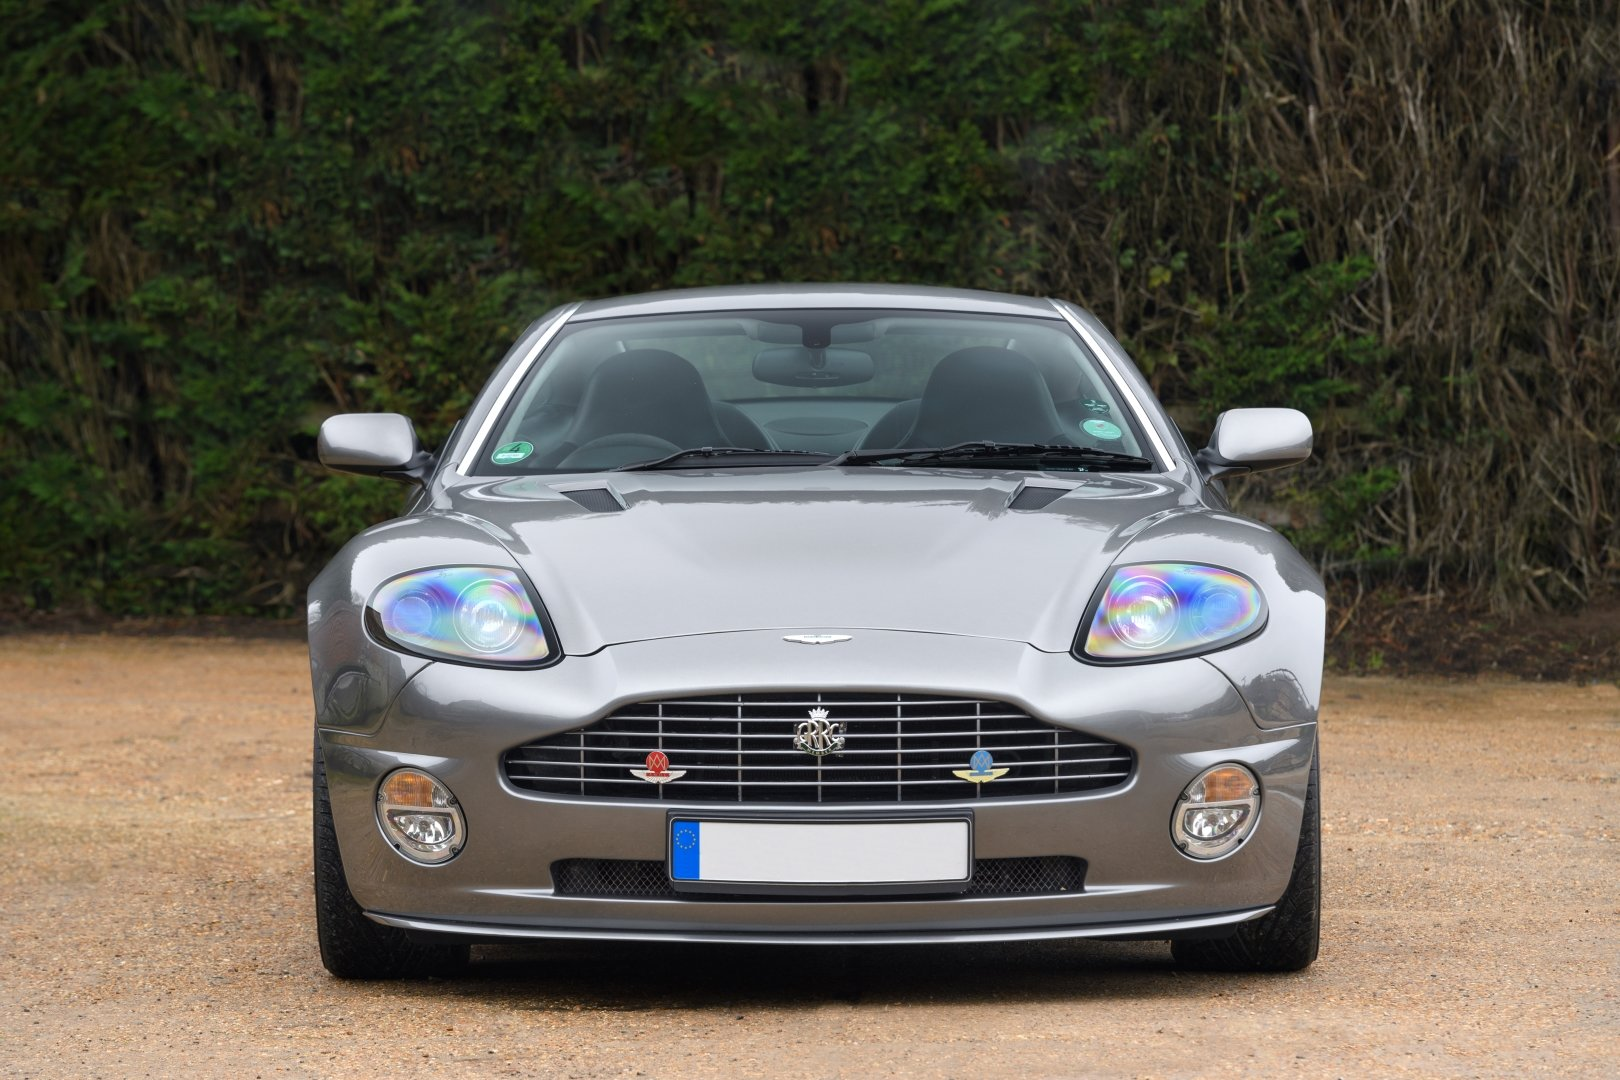 2005 Aston Martin Vanquish S - Ex David Richards, Prodrive For Sale (picture 2 of 12)